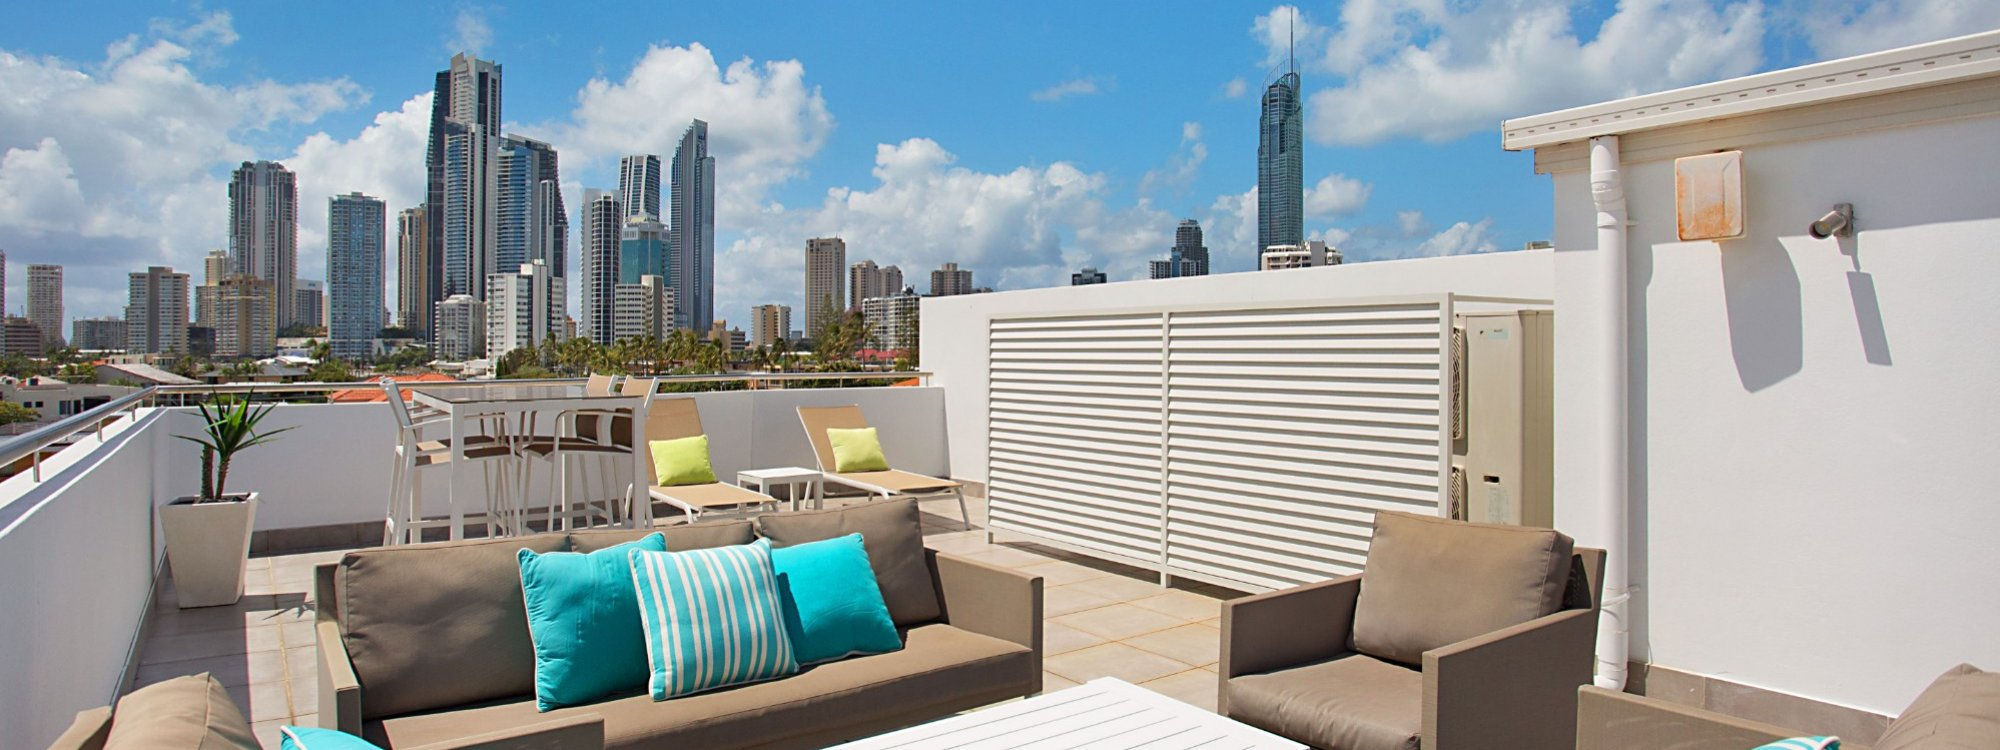 Casa Grande on the Water - Surfers Paradise - Rooftop Terrace Lounge area